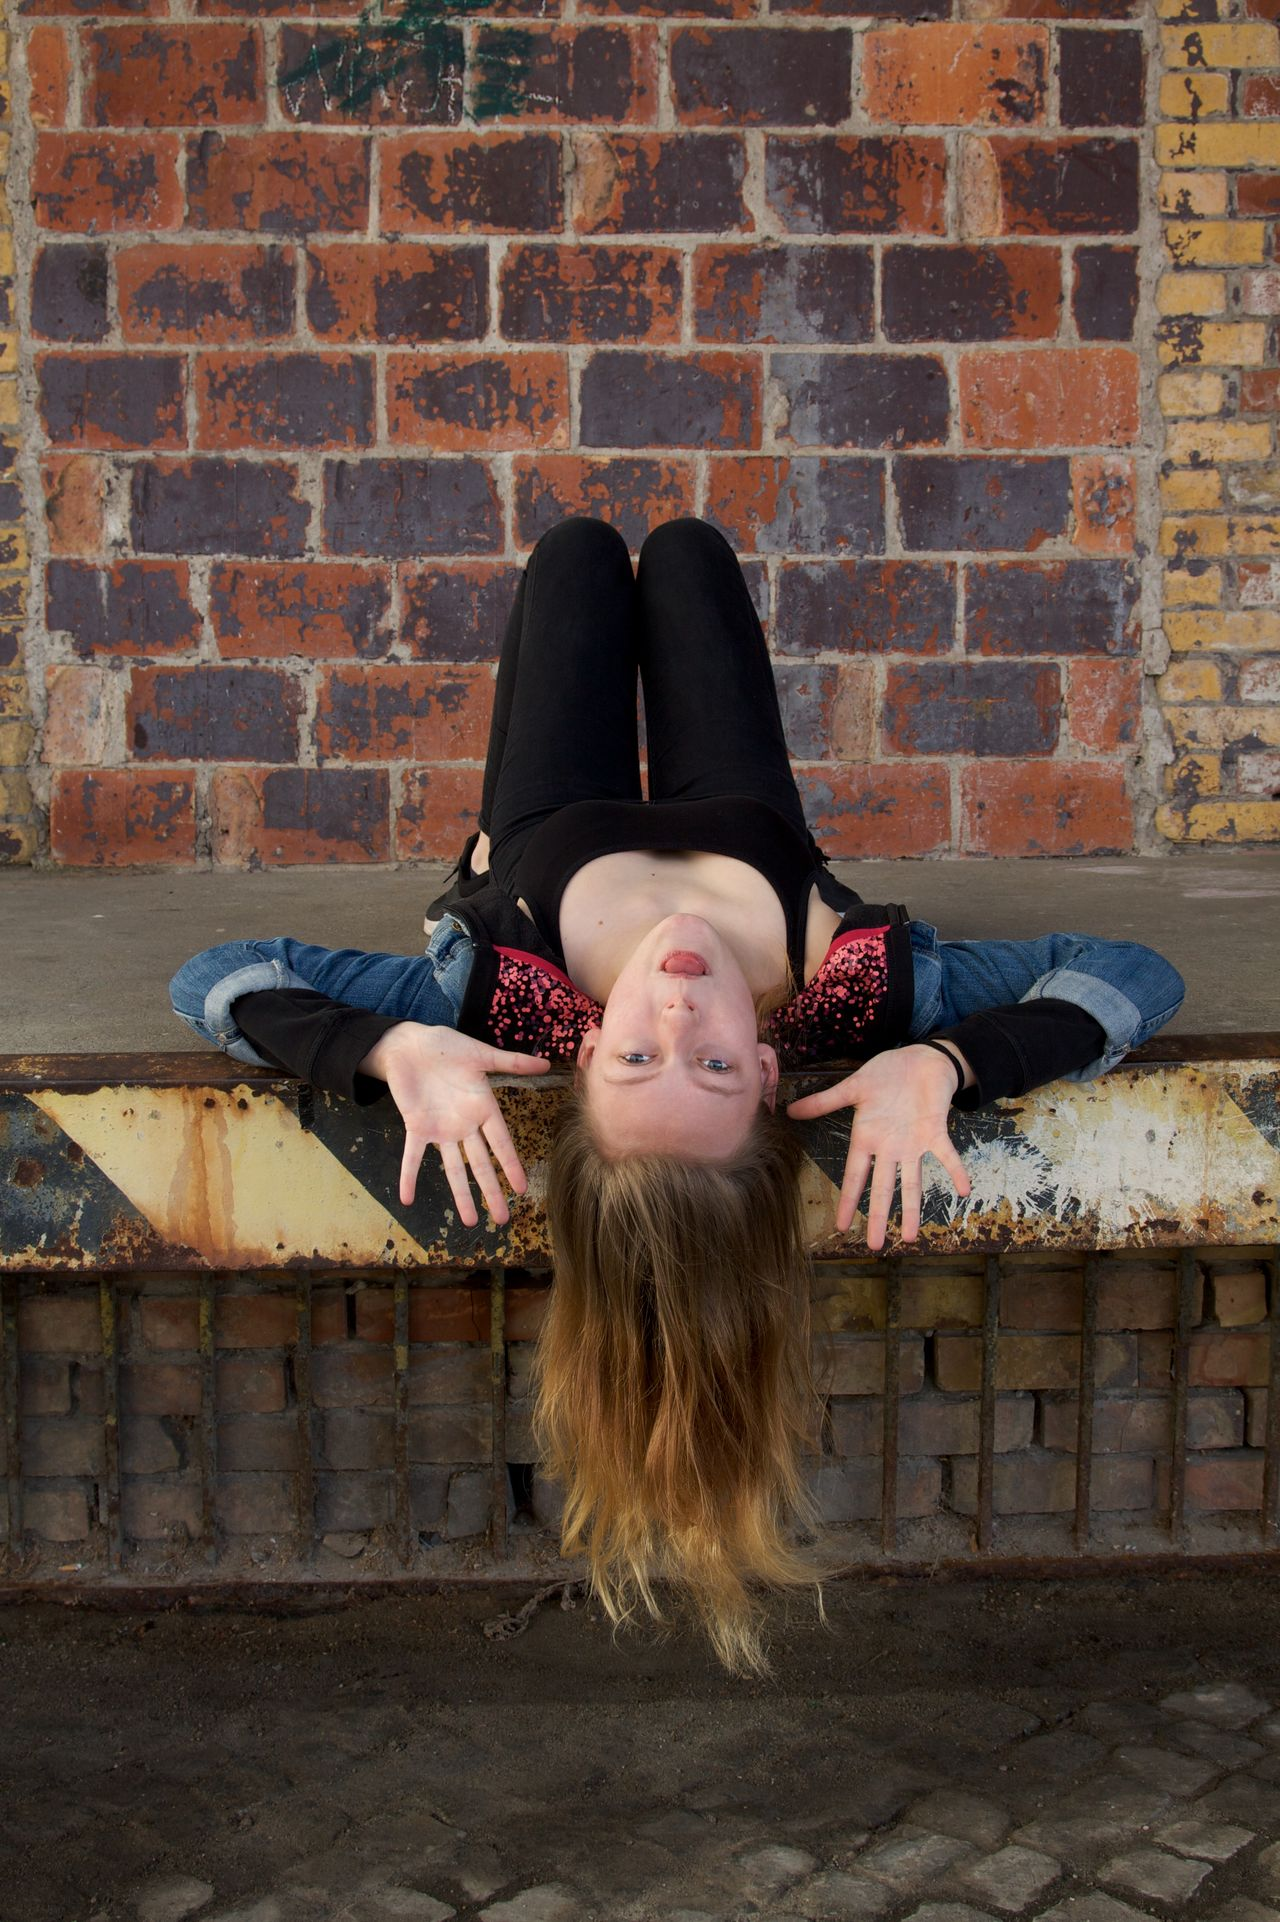 my funny cookie Attitude Brick Wall Day Funny Faces Girl Power Having Fun Having Fun :) One Person Outdoors People Portrait Portrait Photography Teenage Girls Teenager Urban Lifestyle Young Adult Youth Youth Of Today